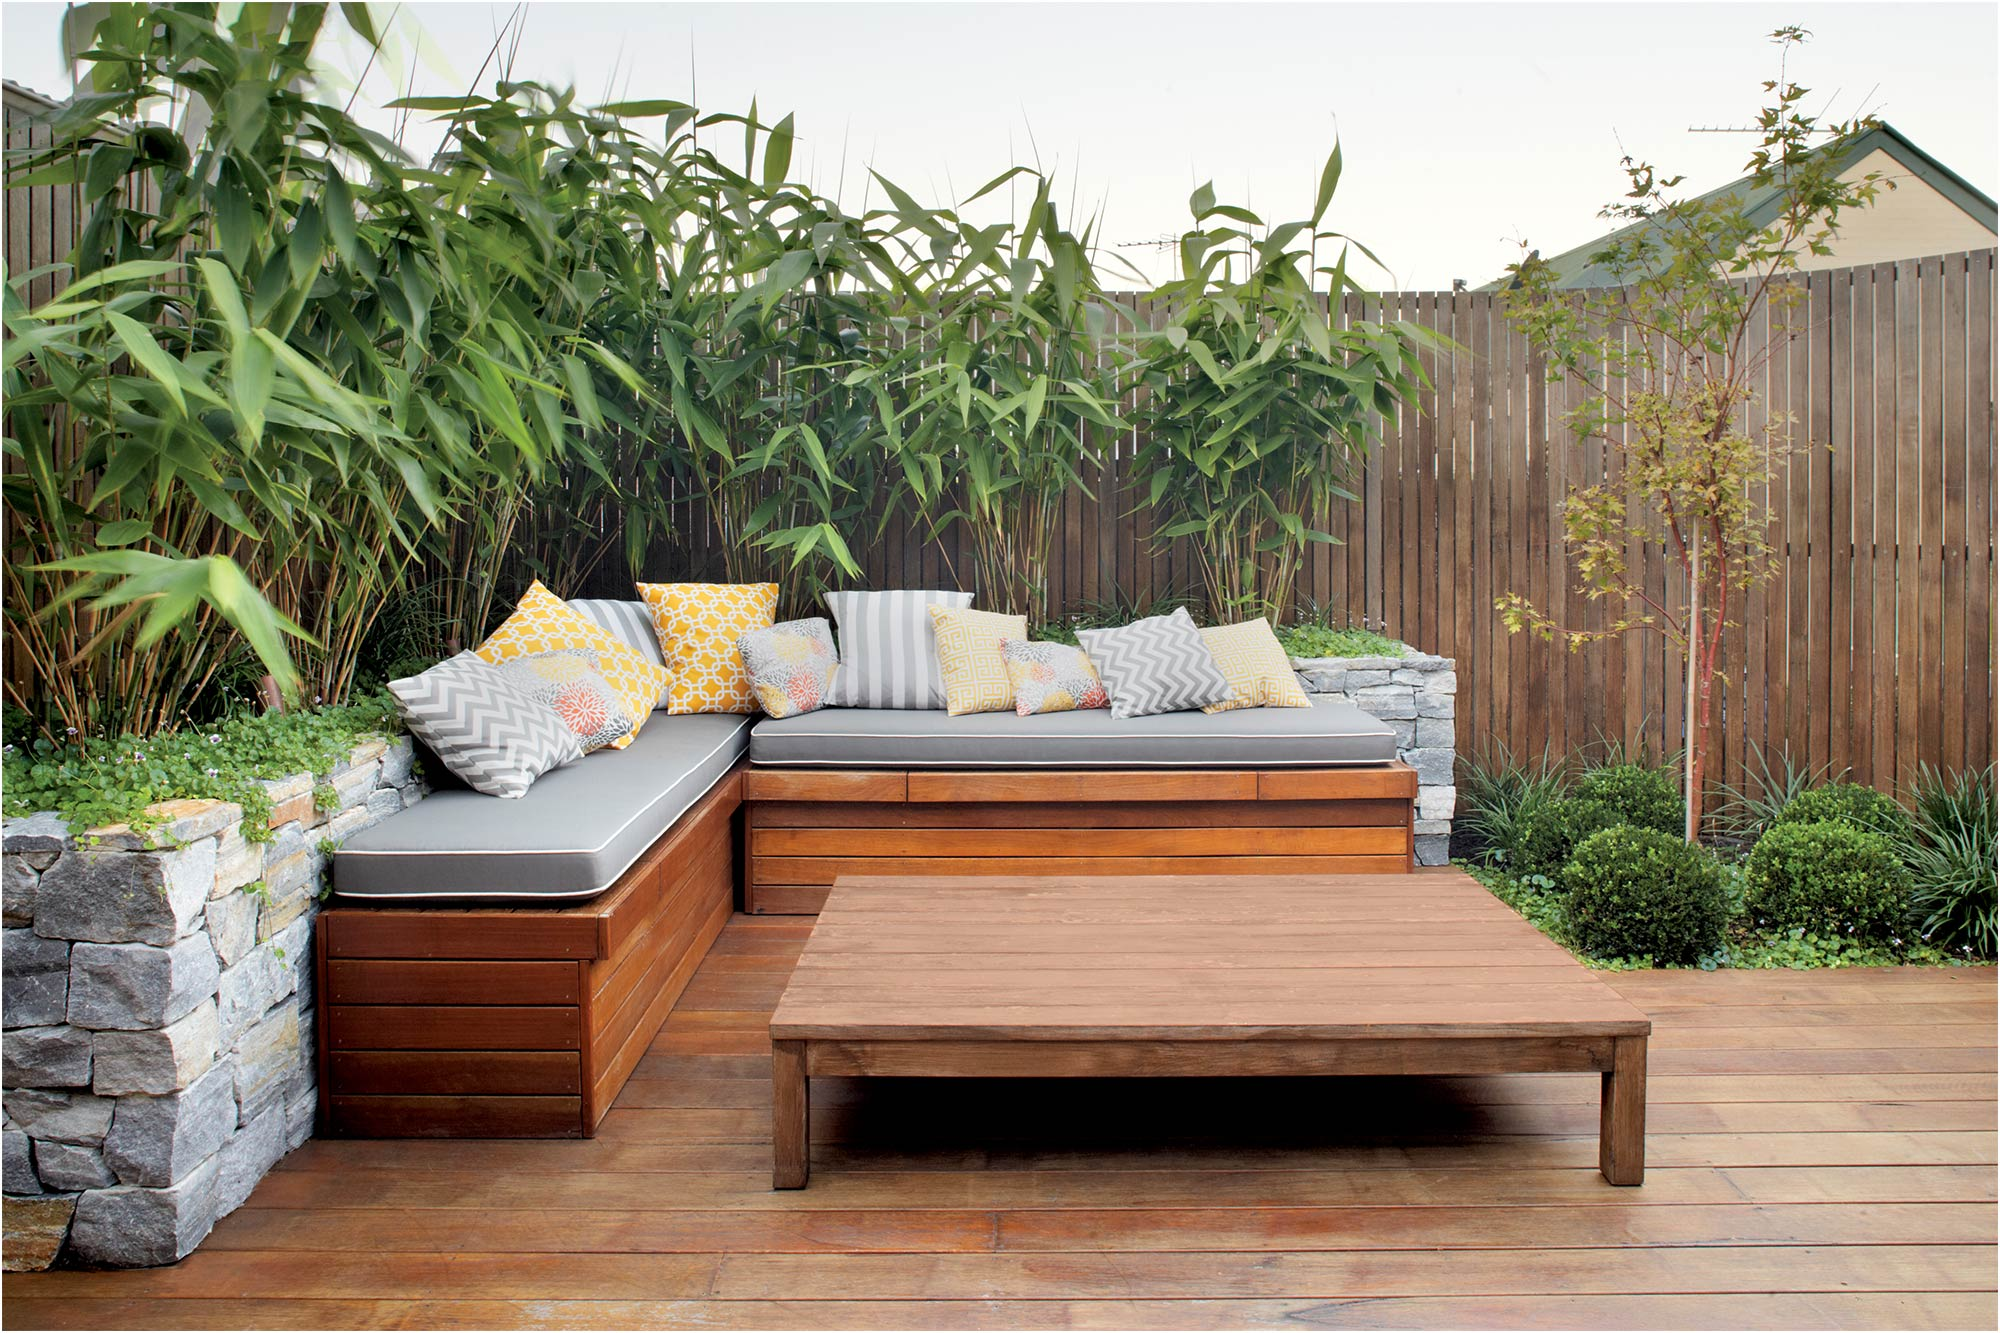 Rozelle Courtyard Landscaping